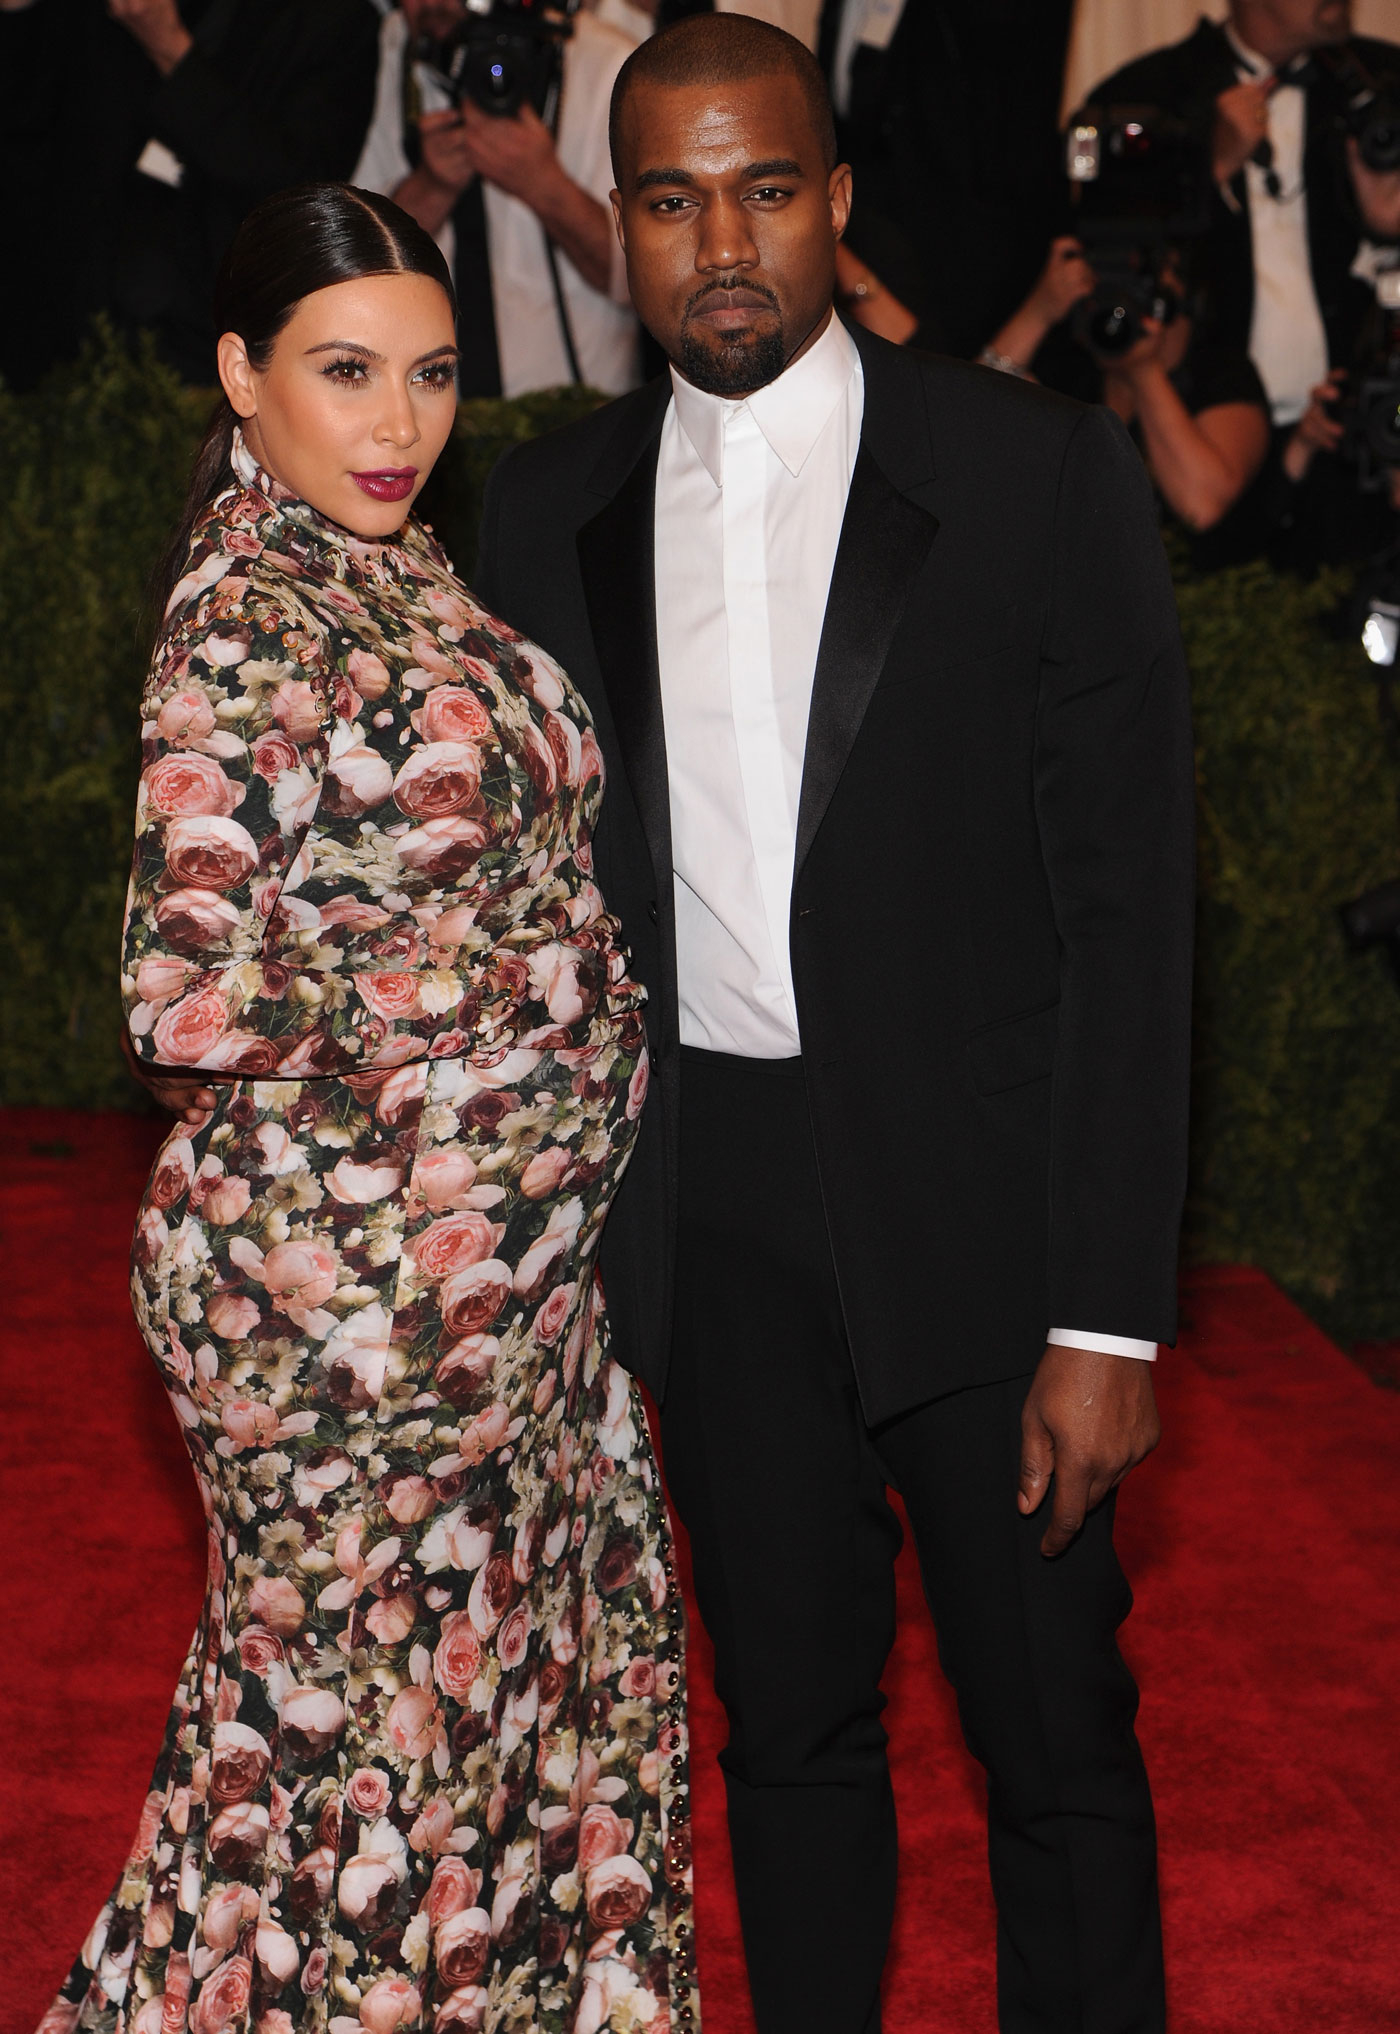 Kardashian And Kanye West Attend The Costume Insute Gala For Punk Chaos To Couture Exhibition At Metropolitan Museum Of Art On May 6 2017